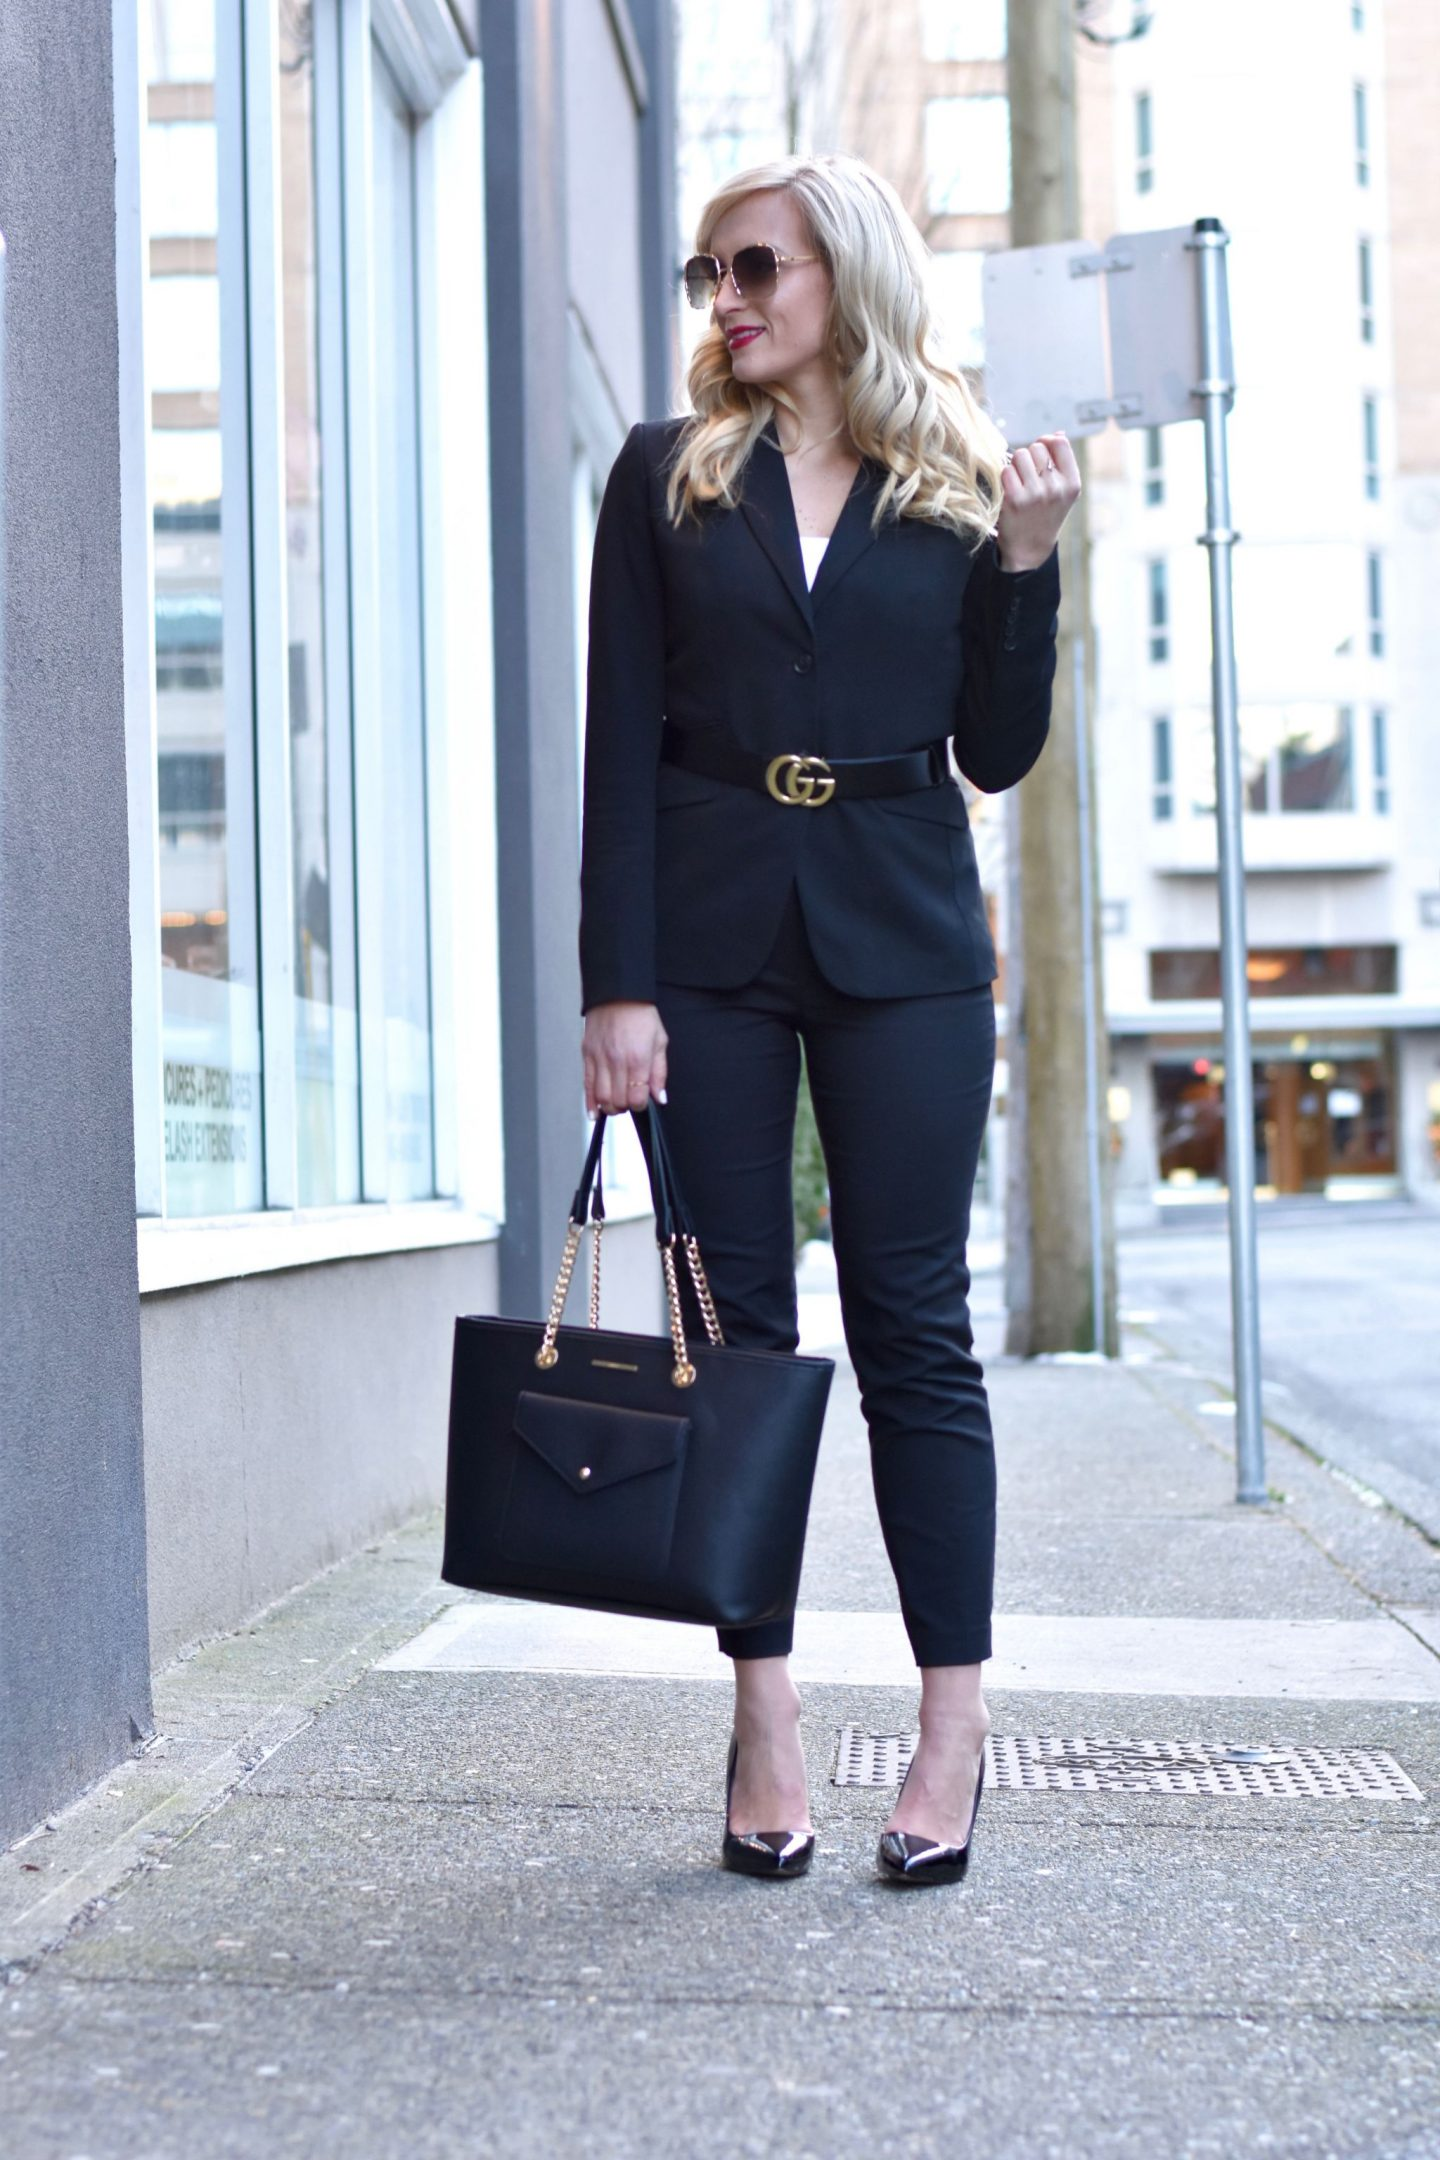 corporate outfit idea belted pant suit